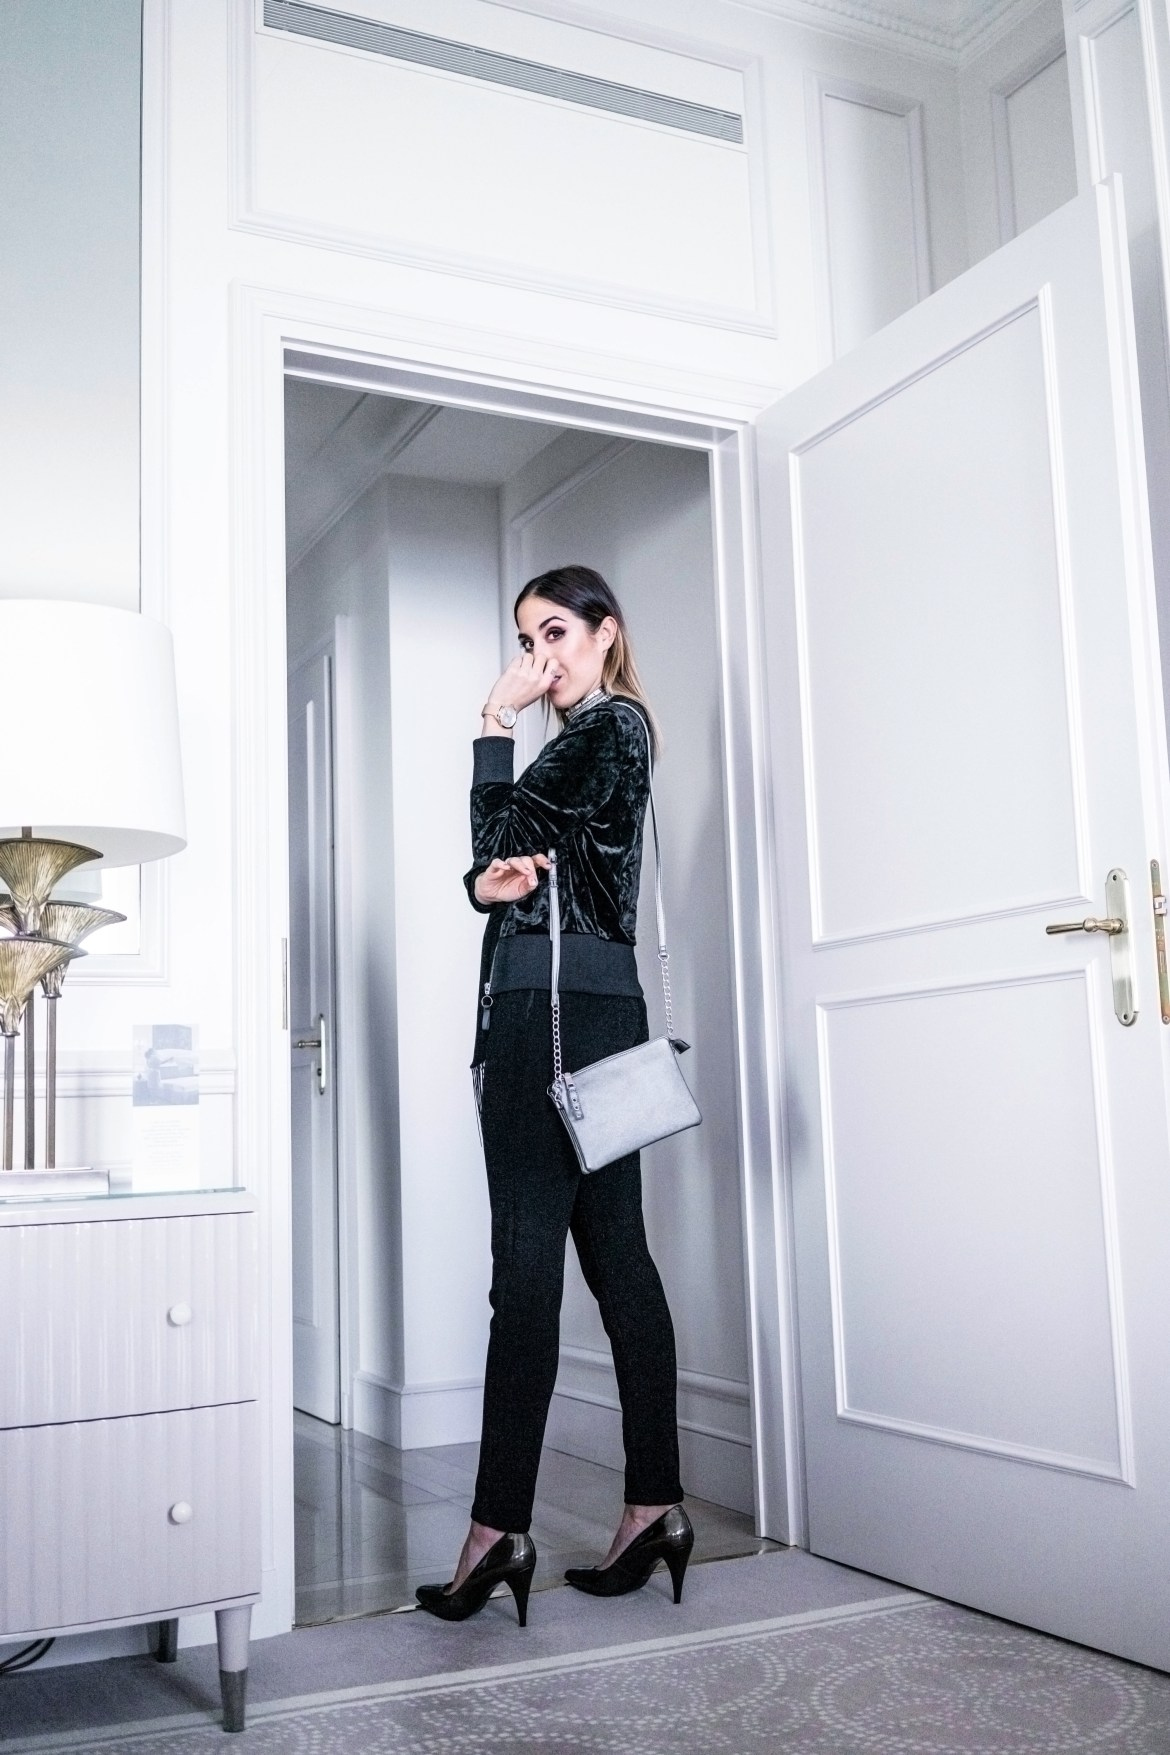 swiss-fashion-blogger-tally-weijl-outfit-newyearseve-ootd-look-inspiration-blog-schweiz-mode-party